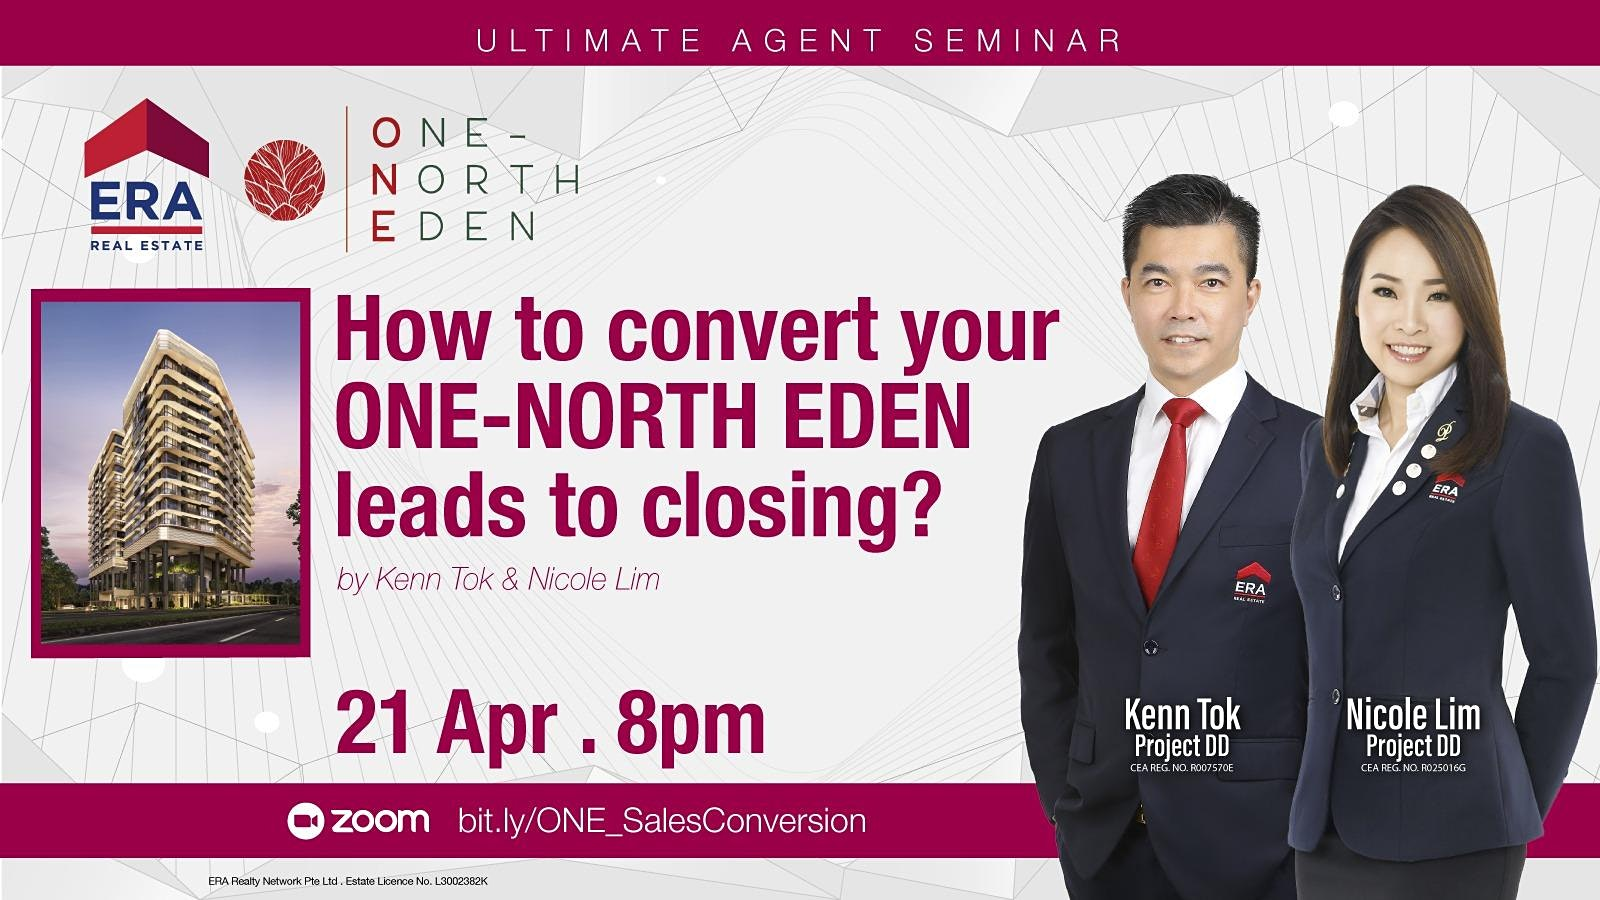 How to Convert Your ONE-NORTH EDEN Leads to Closing?